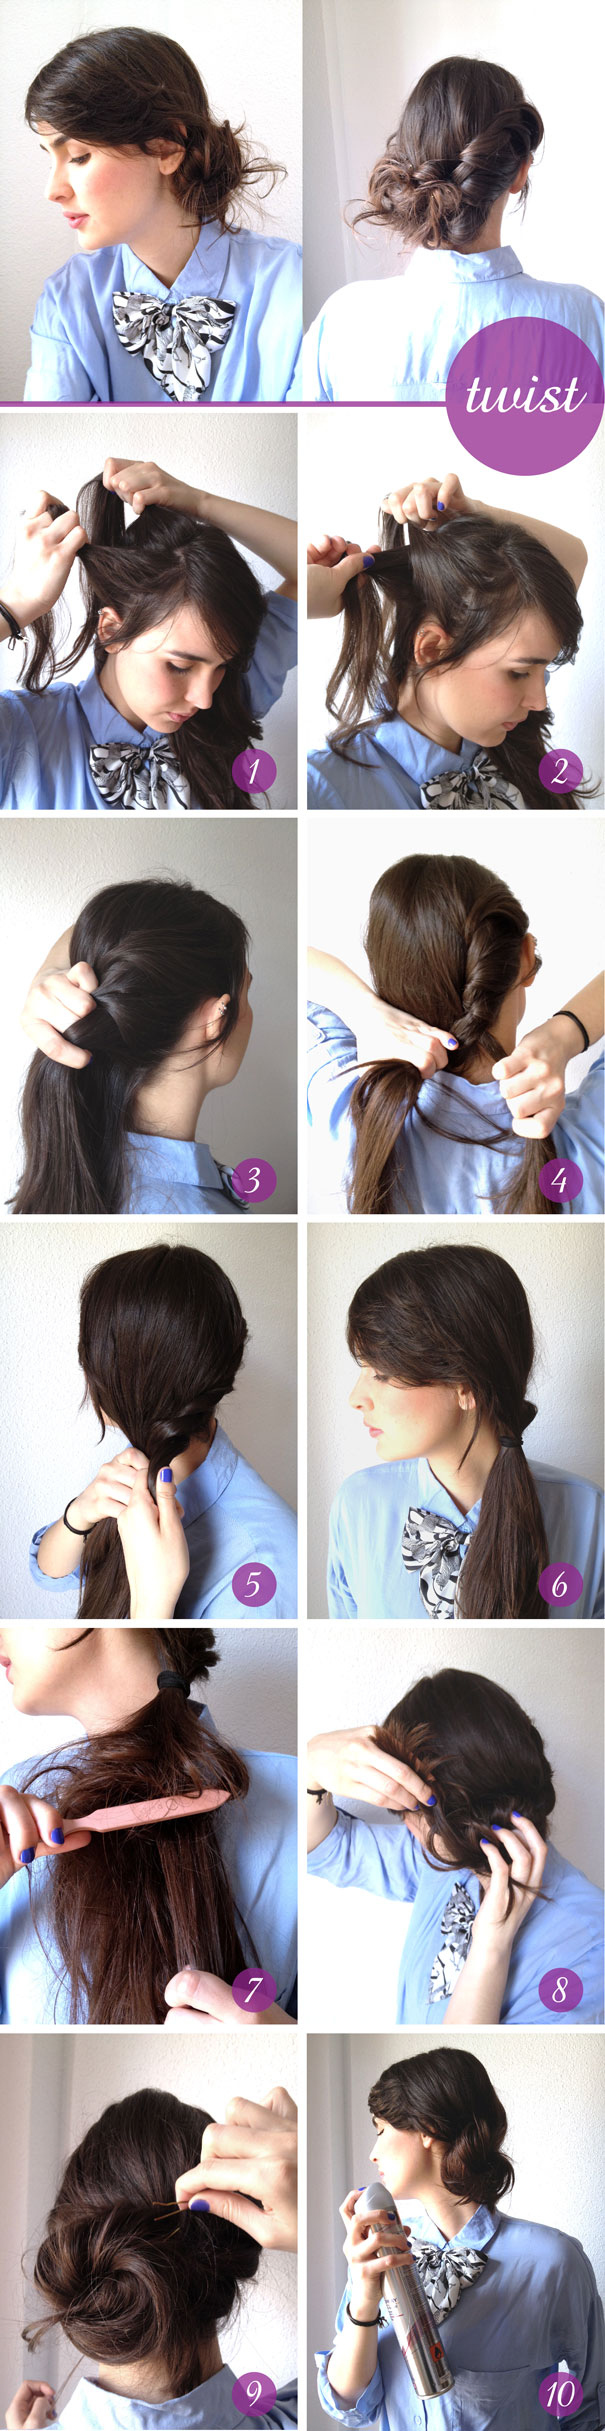 How To Style The Messy Twist Updo Hairstyle